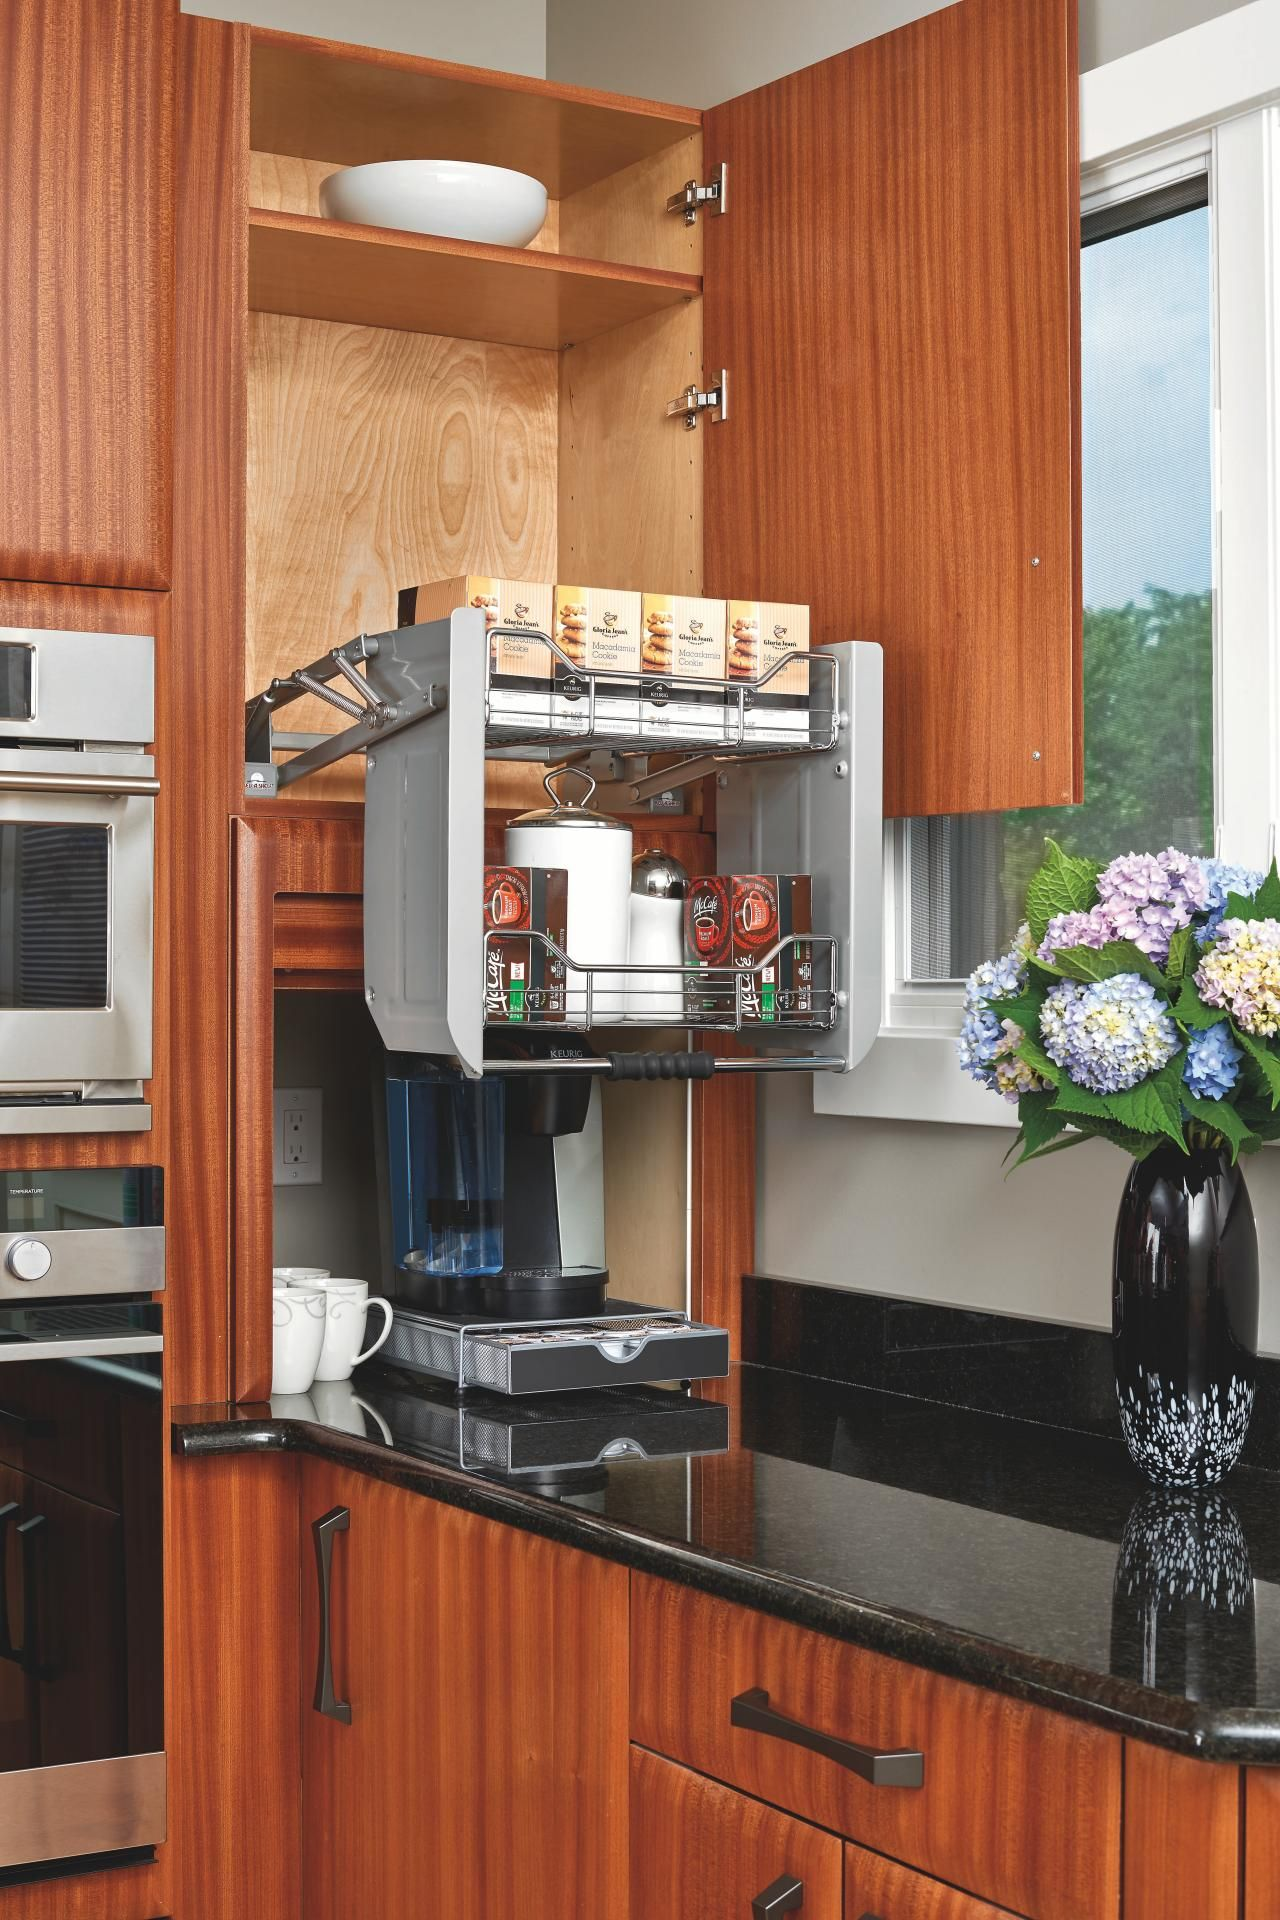 Kitchen Cabinets Storage Lowes Kitchens Designs Cant Reach The Items Youve Stored In Your Upper